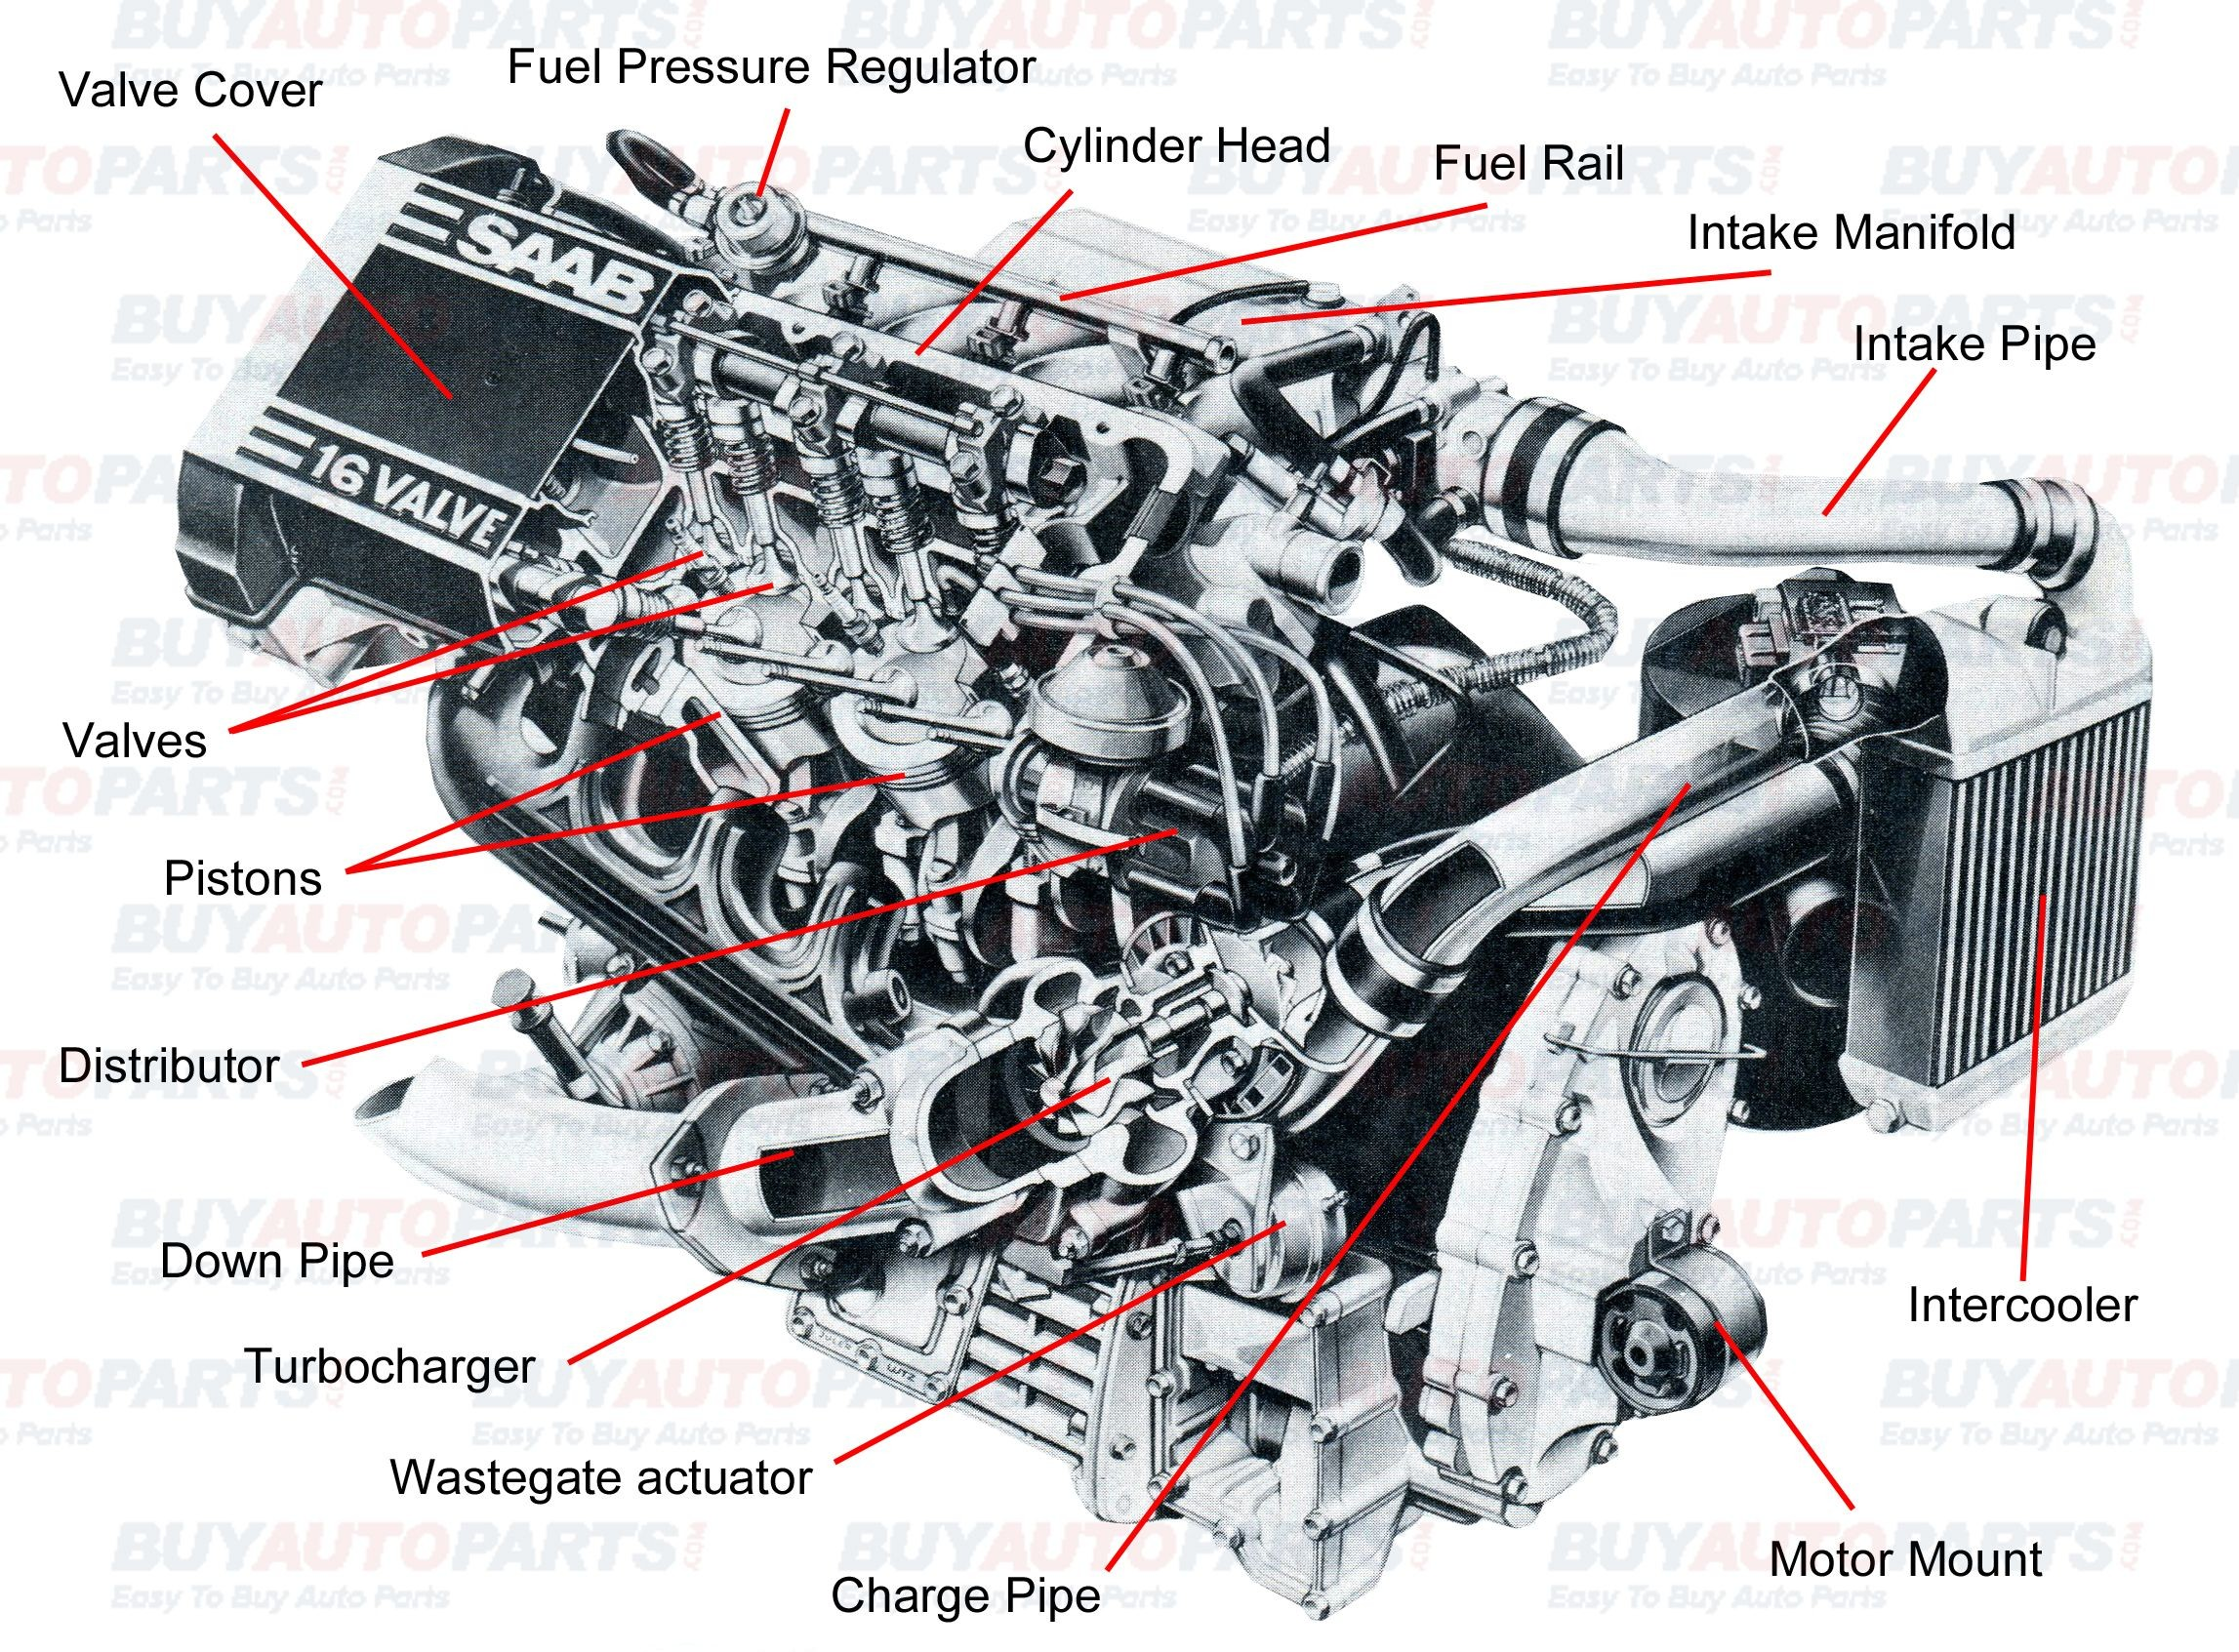 Club Car Engine Parts Diagram Pin by Jimmiejanet Testellamwfz On What Does An Engine with Turbo Of Club Car Engine Parts Diagram Starter Generator Wiring Diagram Golf Cart Reference Wiring Diagrams